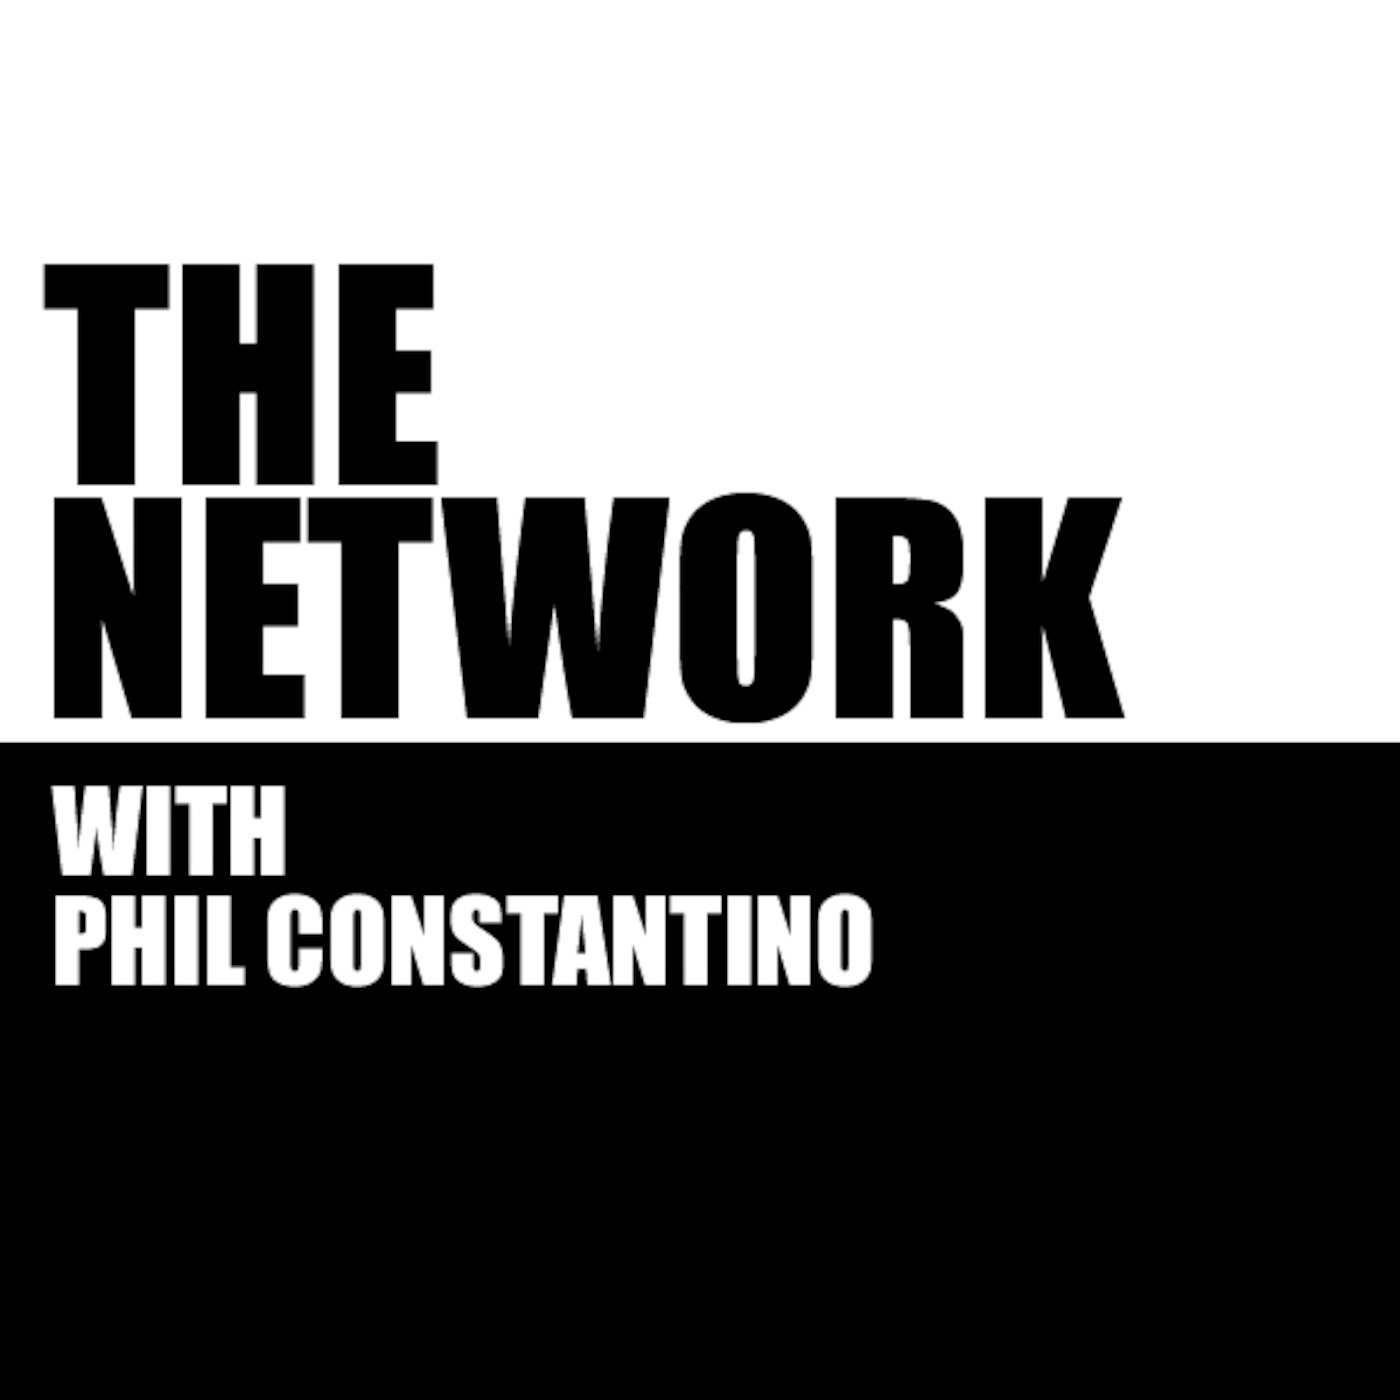 The Network with Phil Constantino